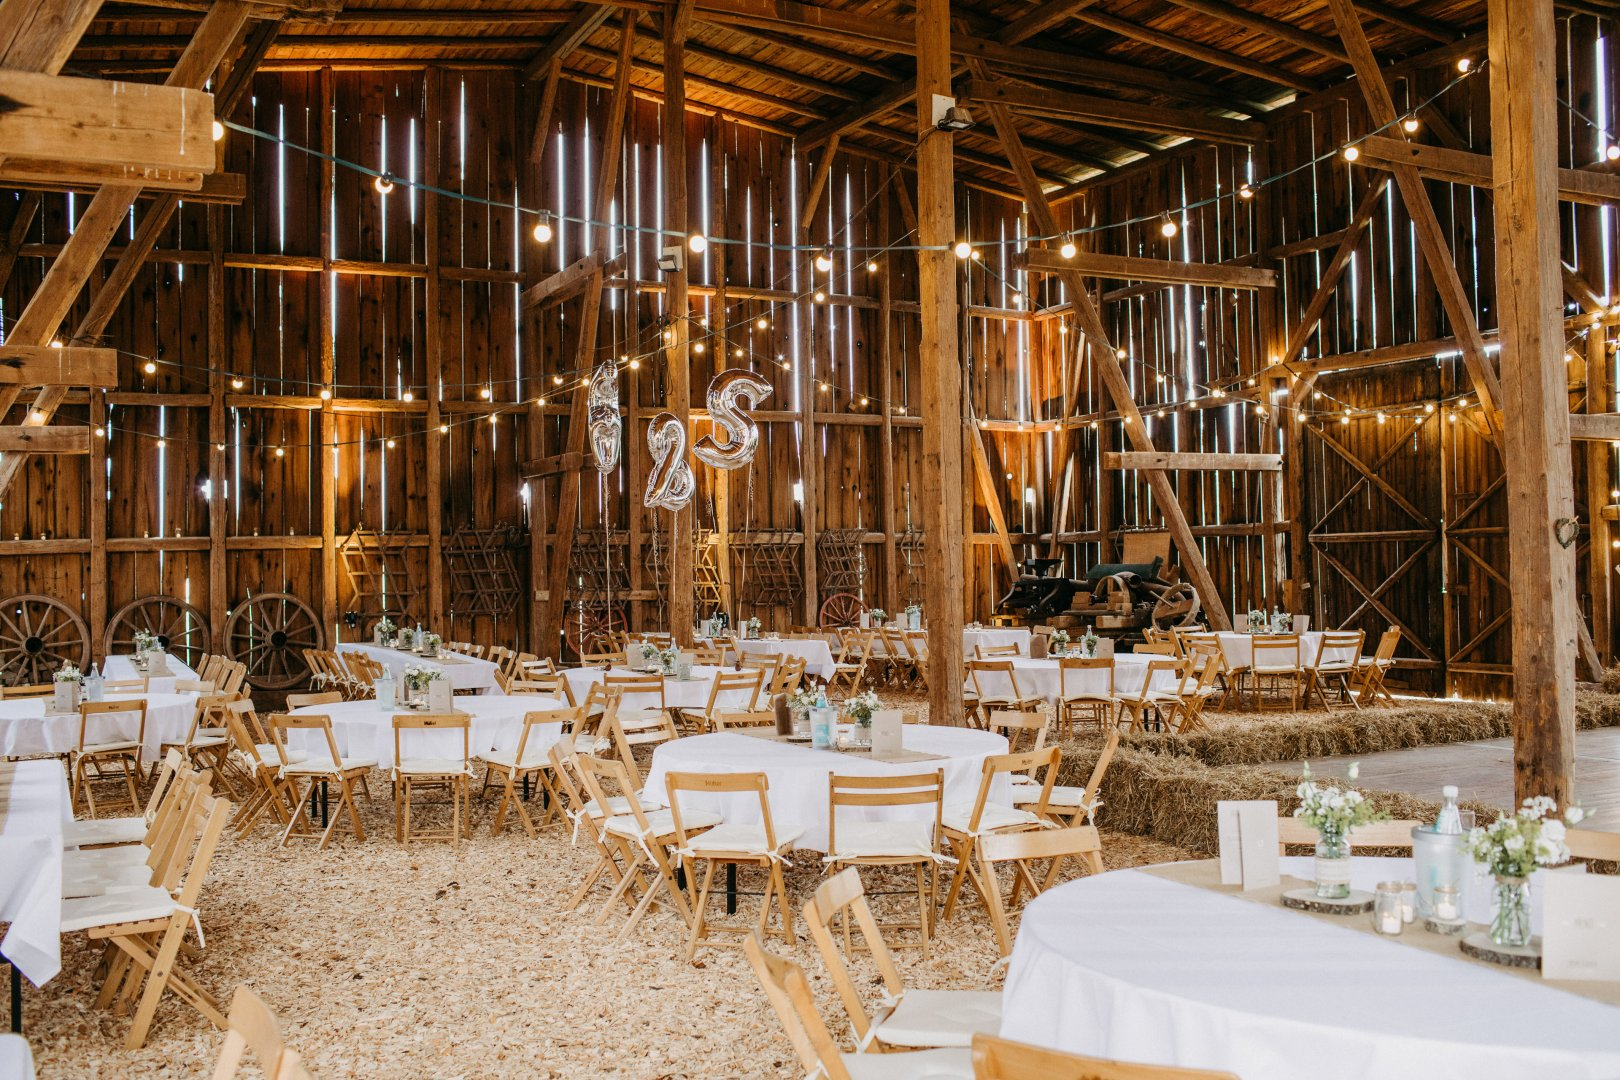 Chiavari chair Restaurant Function hall Lighting Room Chair Furniture Table Rehearsal dinner Interior design Building Architecture Wedding reception Plant Party House Ballroom Banquet